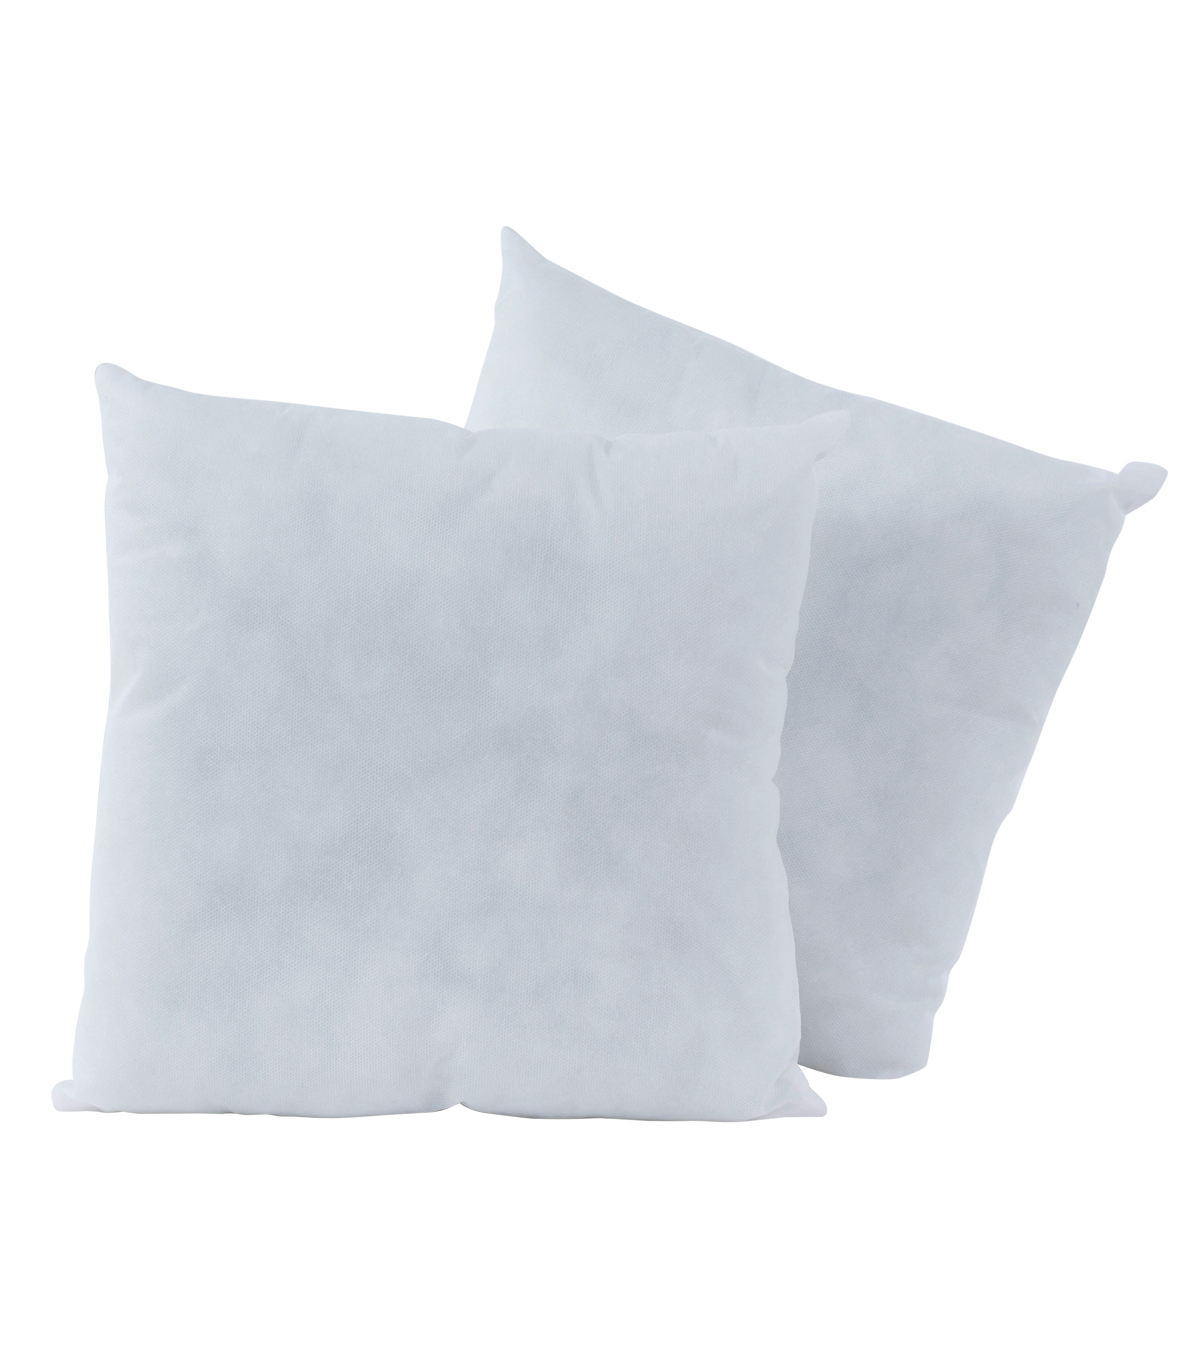 forms neckroll pillow square